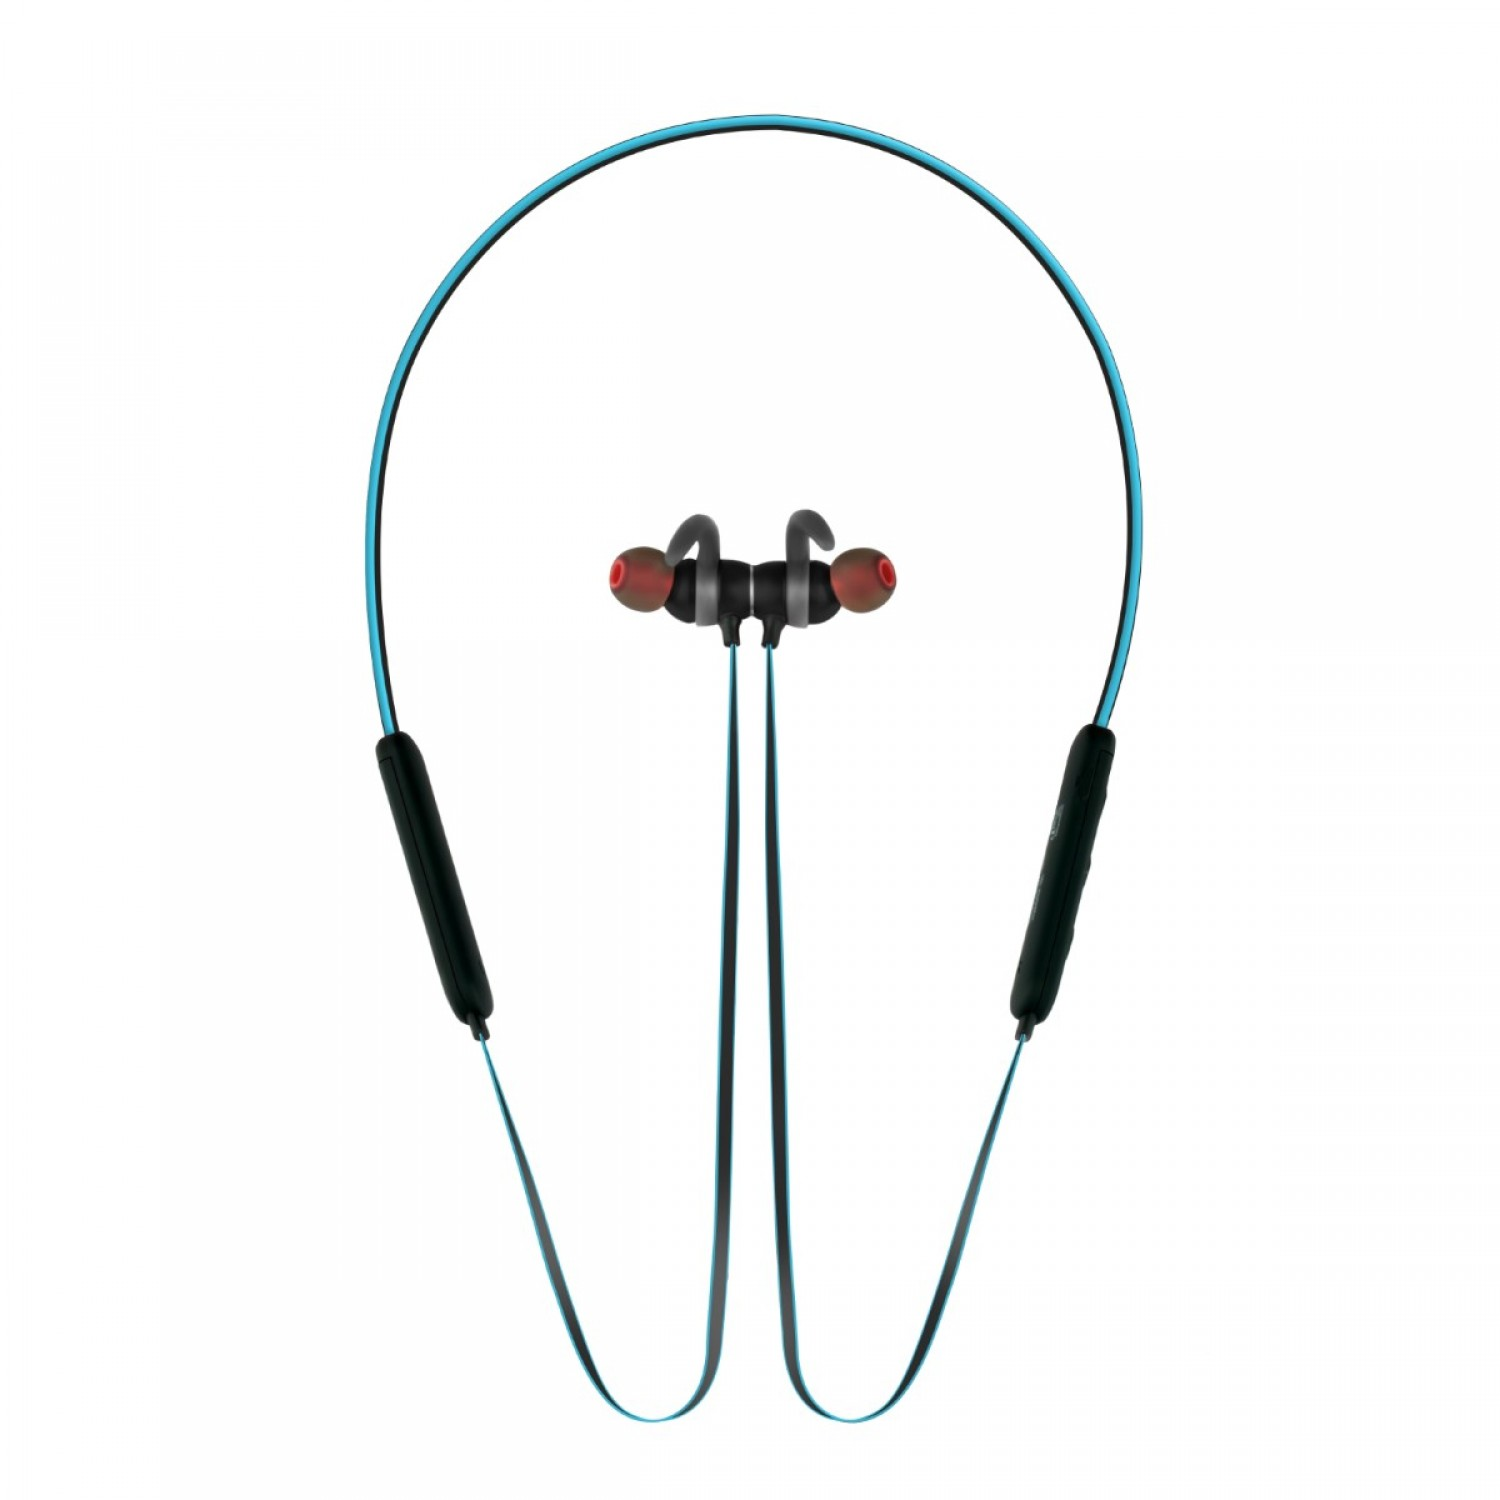 Promate Bluetooth Headphone, High Definition Wireless Neckband Headset with Built-In Microphone, Noise Cancelling and Magnetic Earphones for All Bluetooth Enabled Devices Spicy-1 BLUE